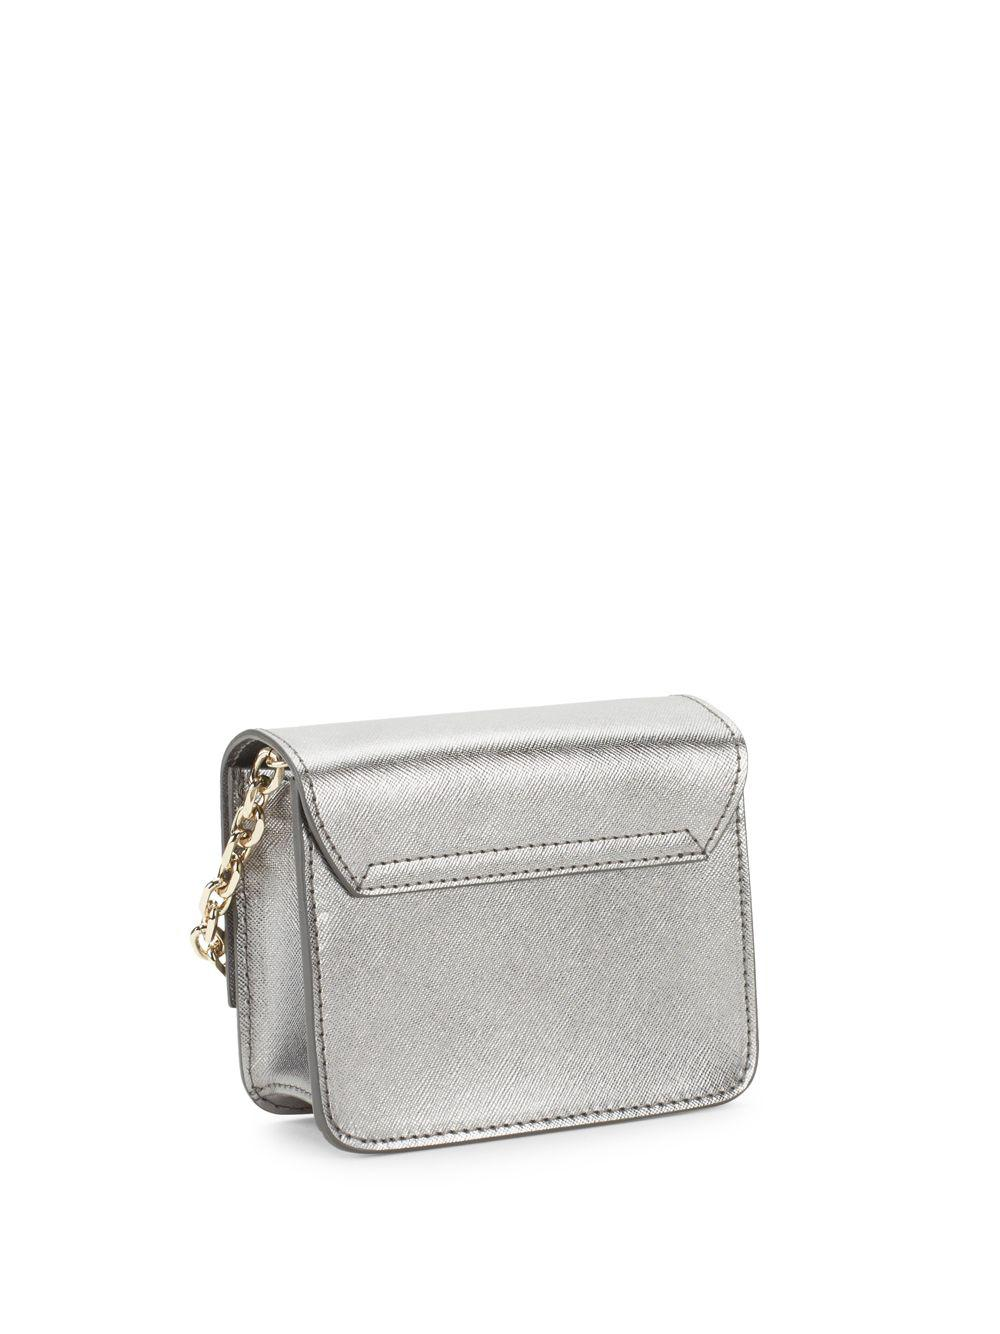 b746f77d2a Lyst - Versace Metallic Leather Crossbody Bag in Gray